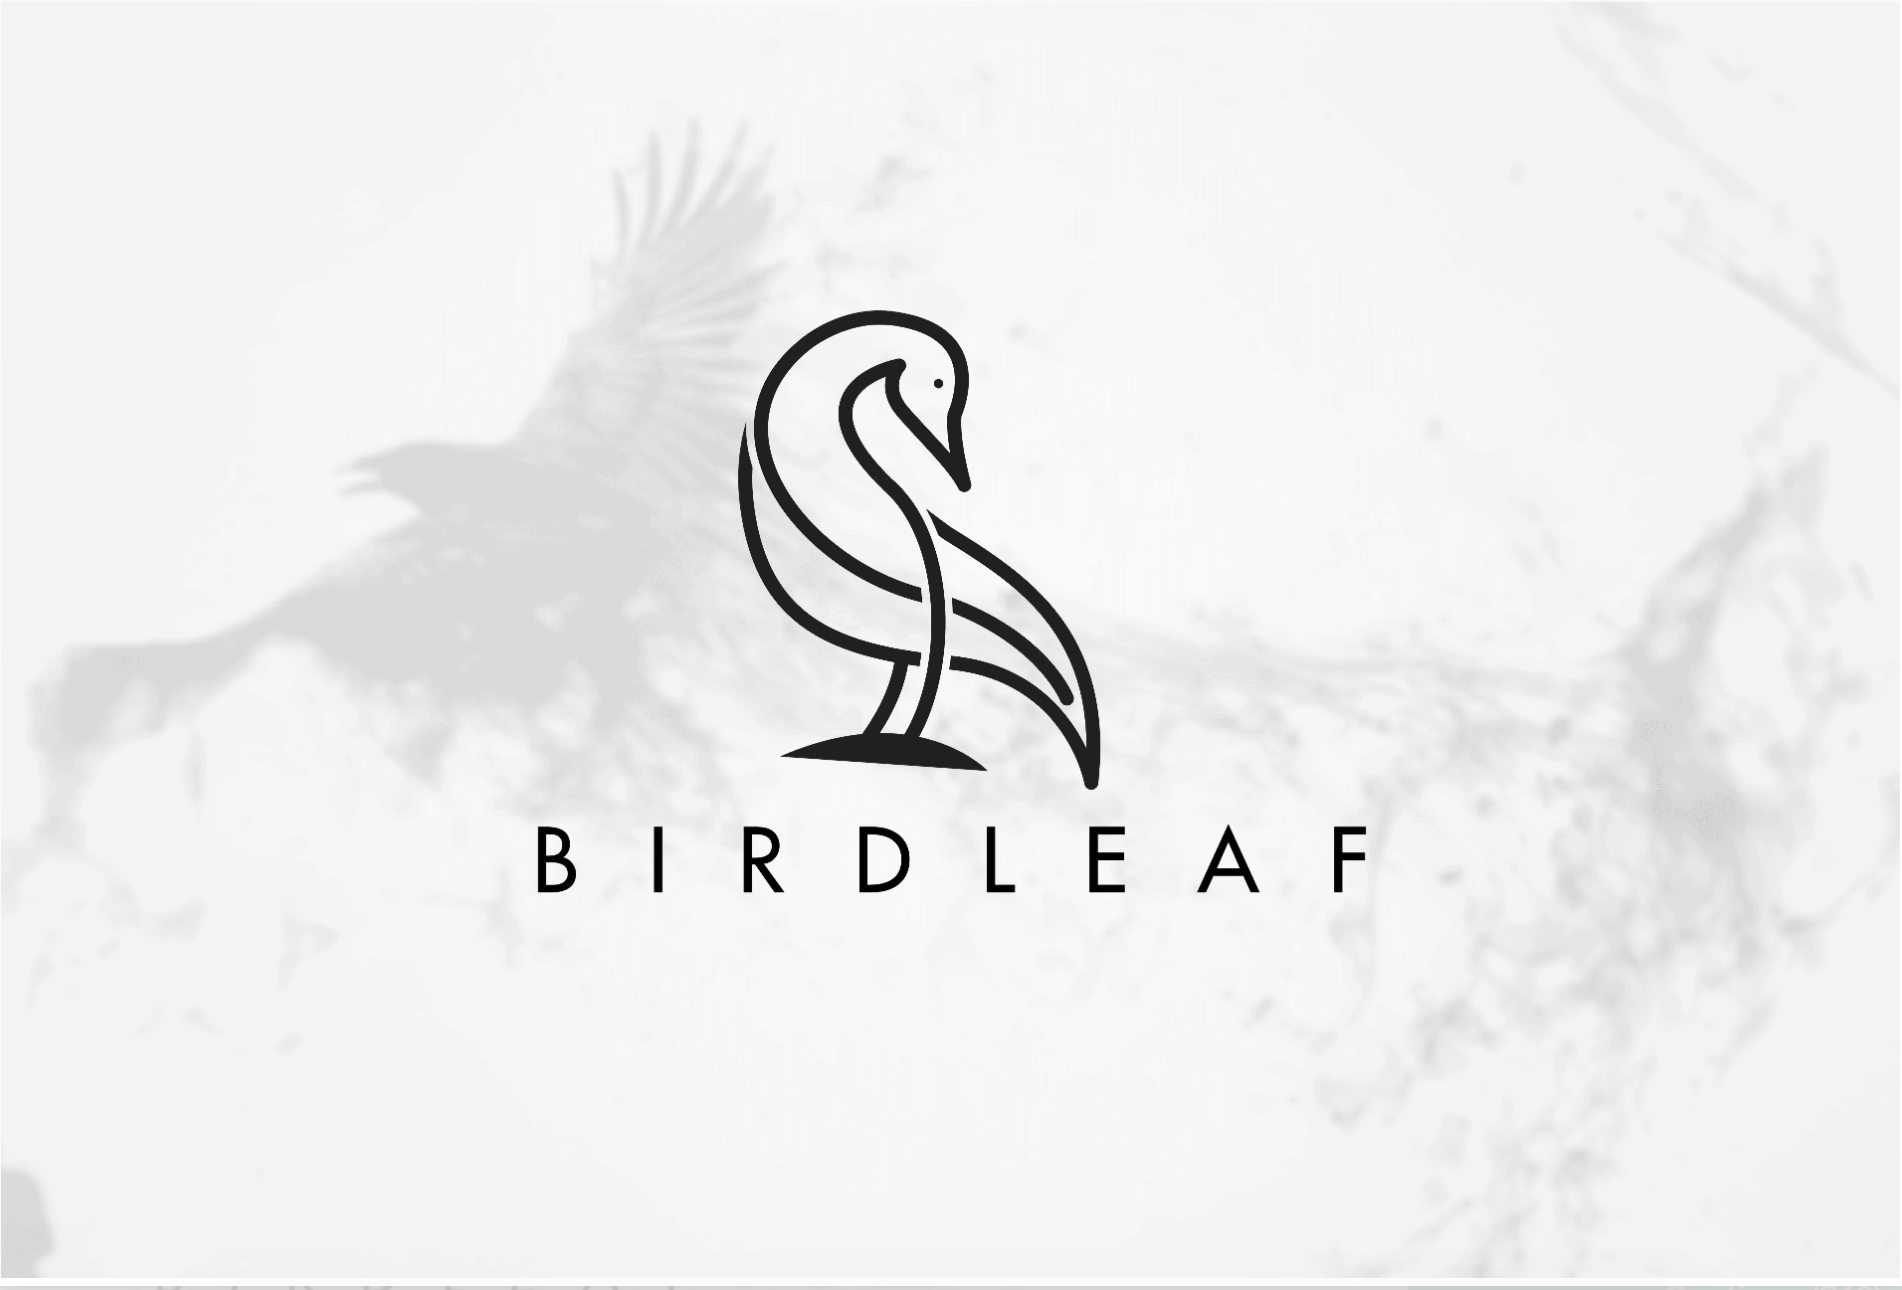 Custom logo created on Fiverr - BirdLeaf